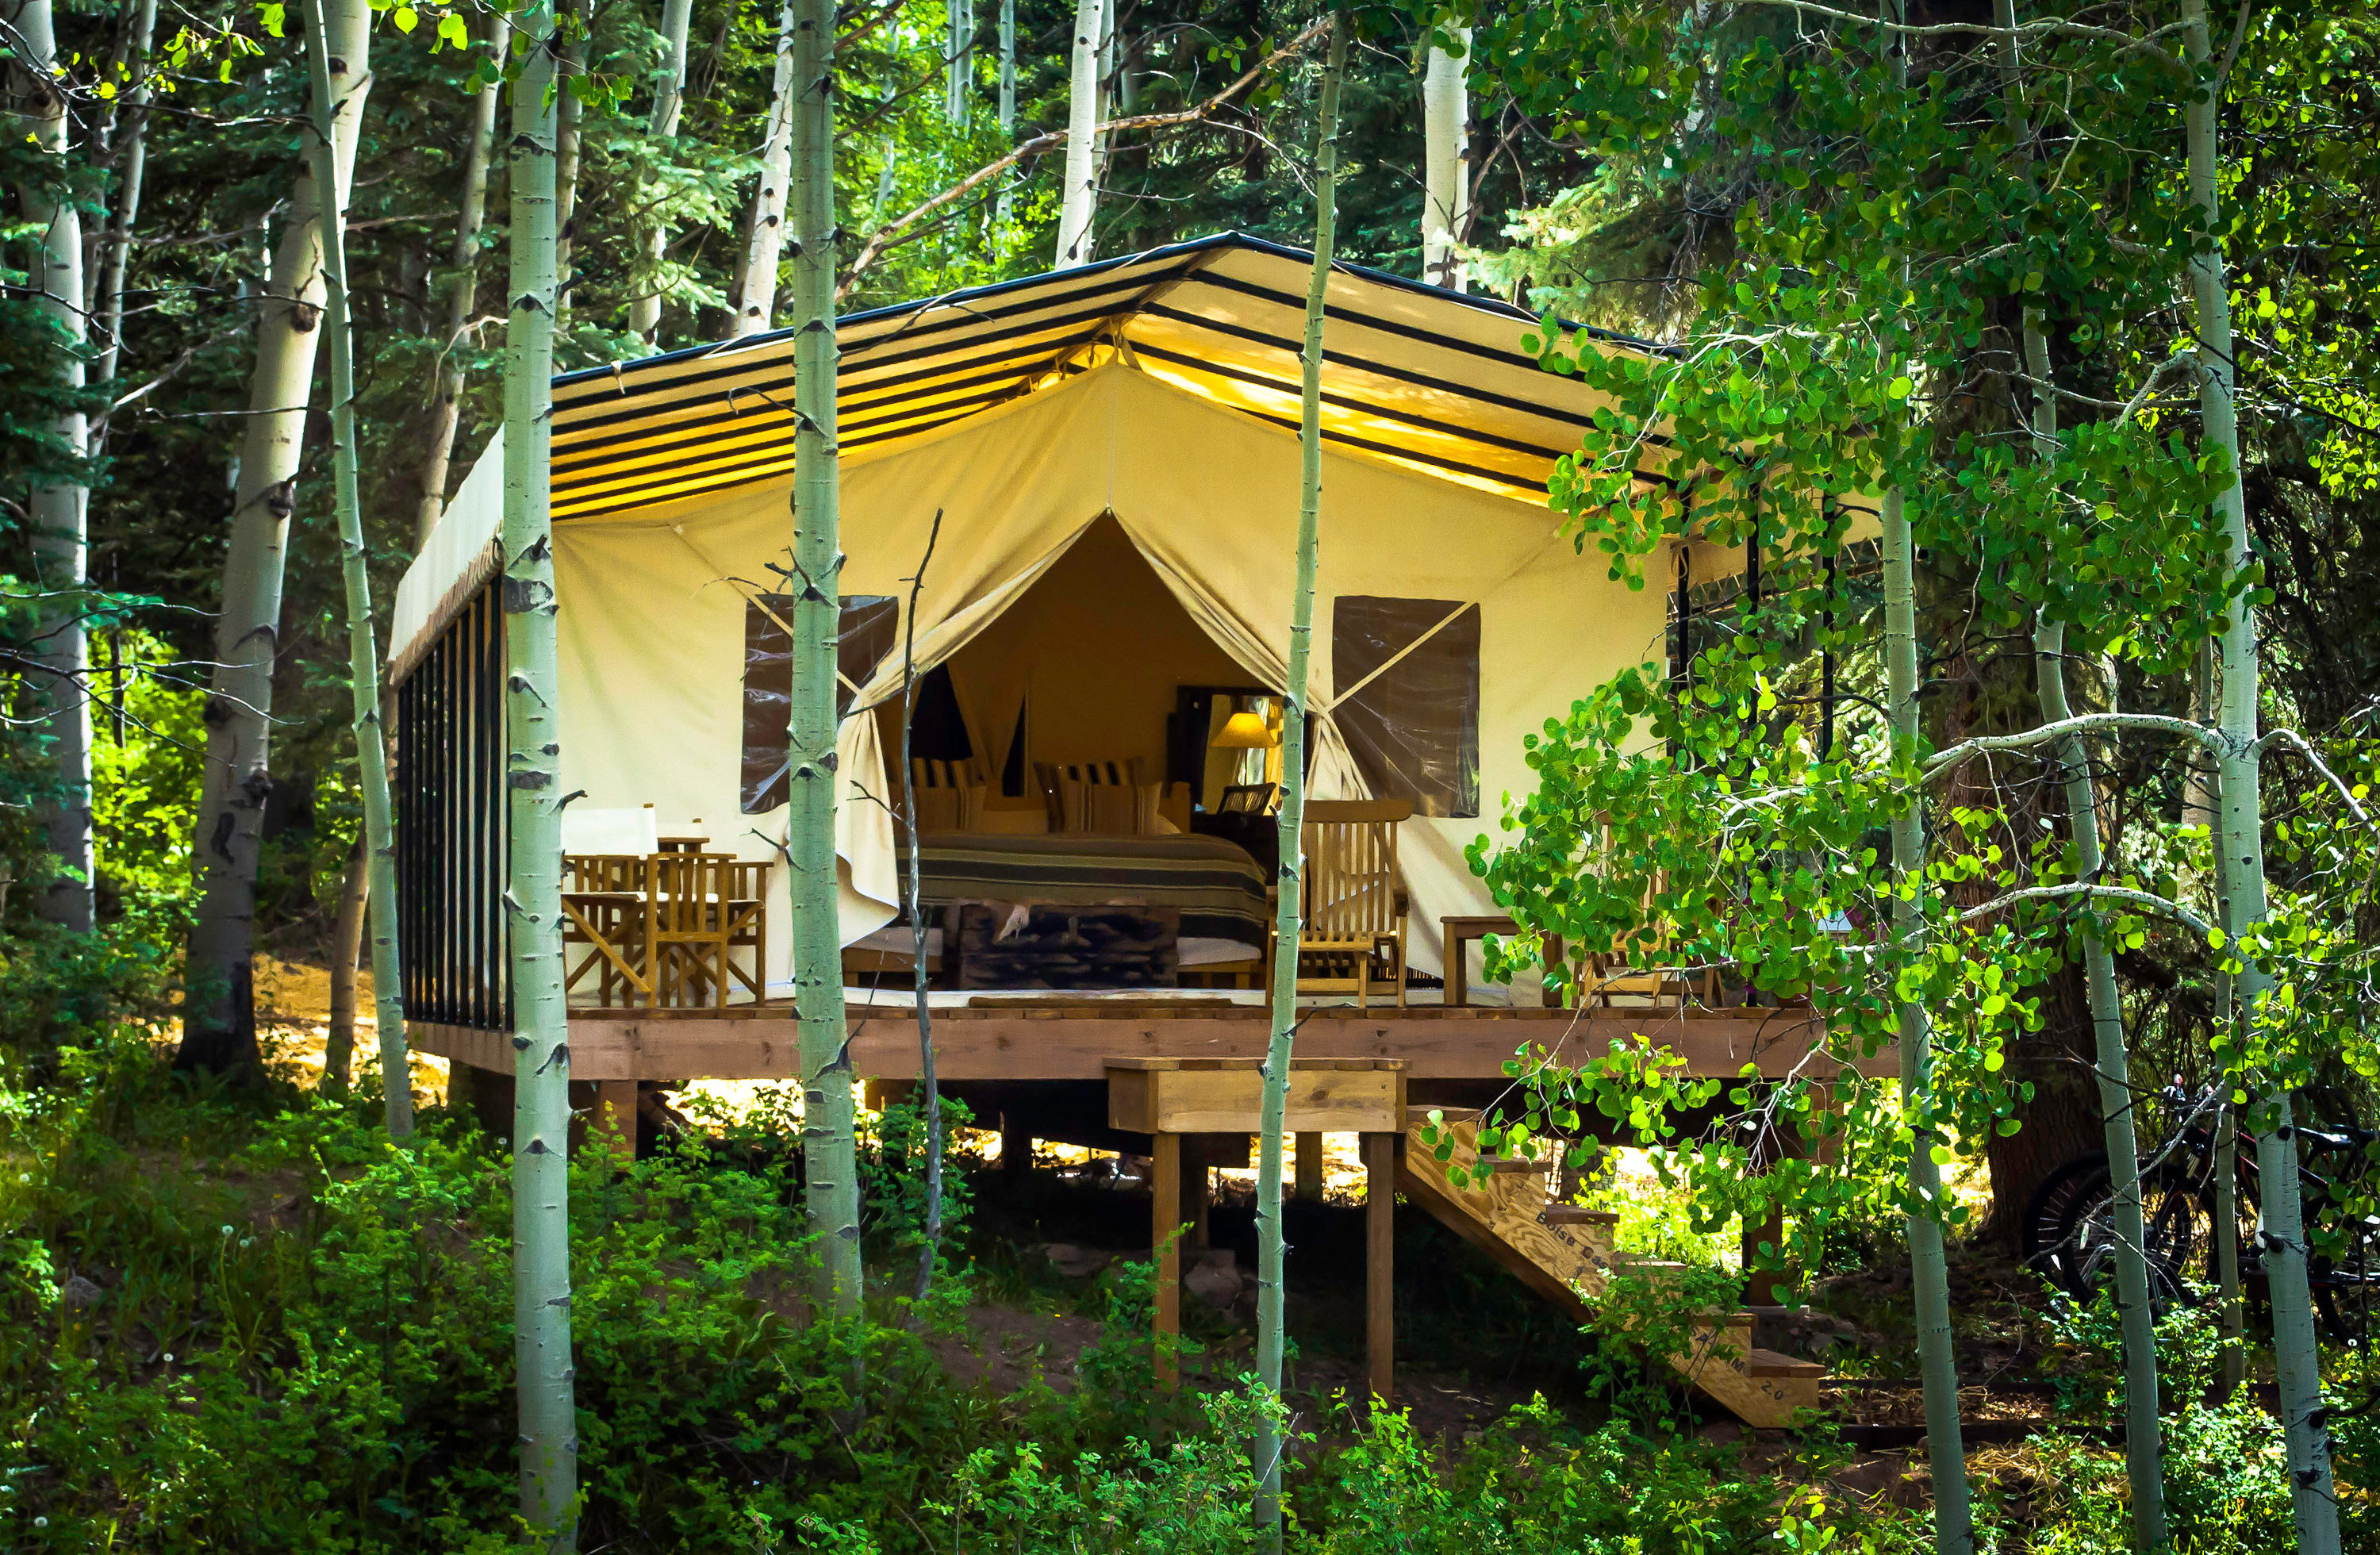 Adventure Bedroom Country Forest Glamping Mountains Outdoors + Adventure Rustic Weekend Getaways Wellness tree habitat natural environment house building Jungle Resort hut temple log cabin outdoor structure rainforest shrine shinto shrine tree house Garden wooded